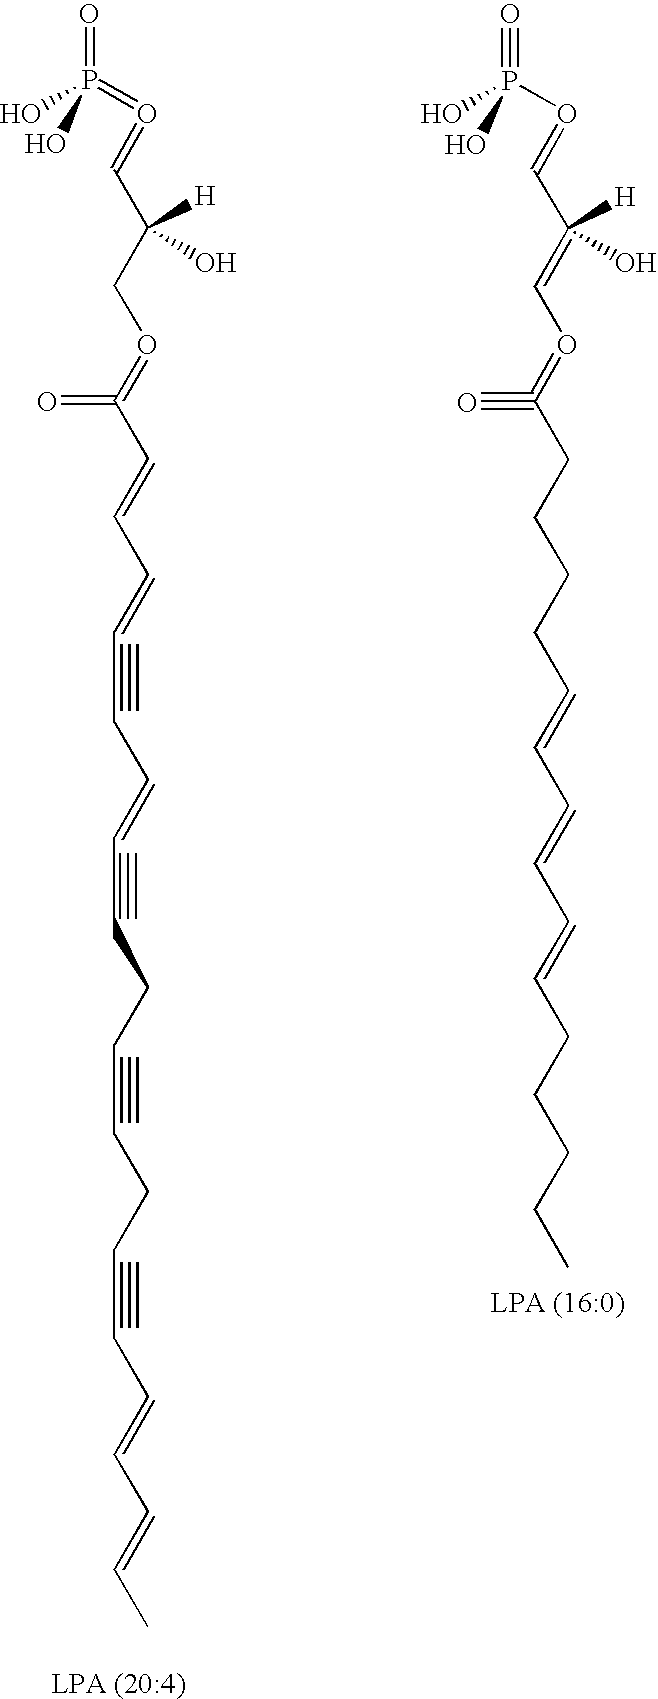 US8158124B2 - Compositions and methods for binding lysophosphatidic